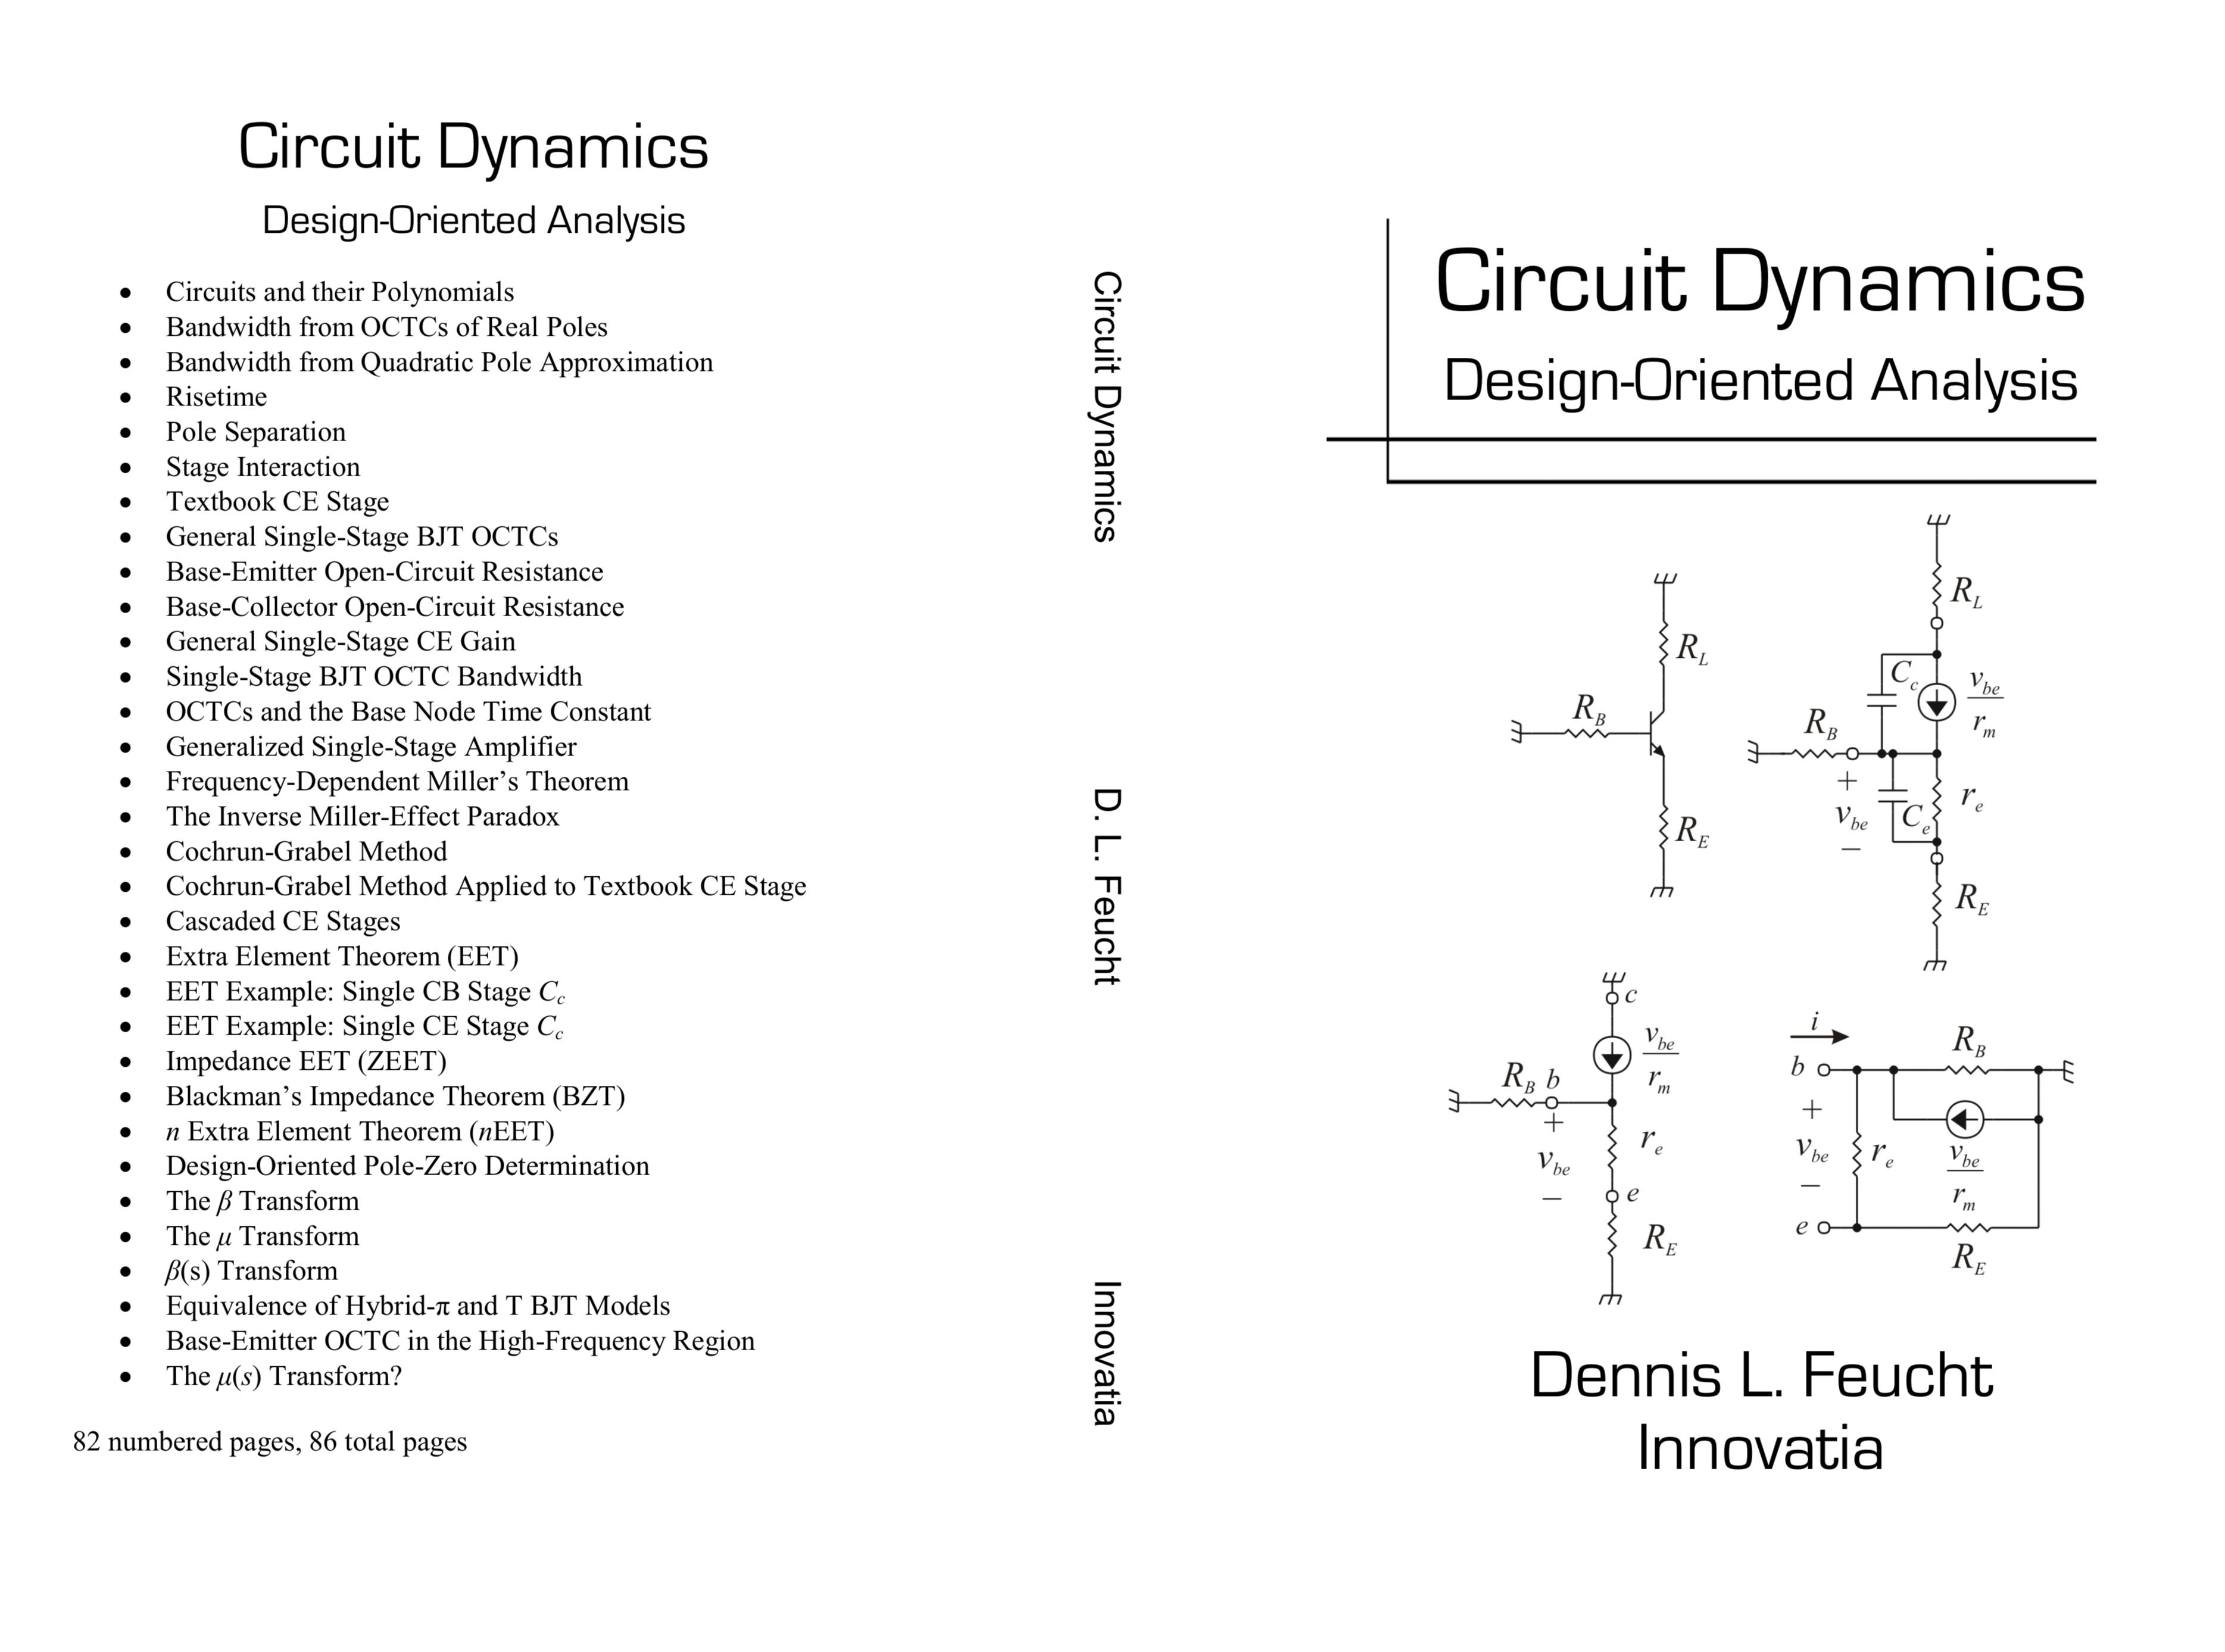 Circuit Dynamics: Design-Oriented Analysis cover image